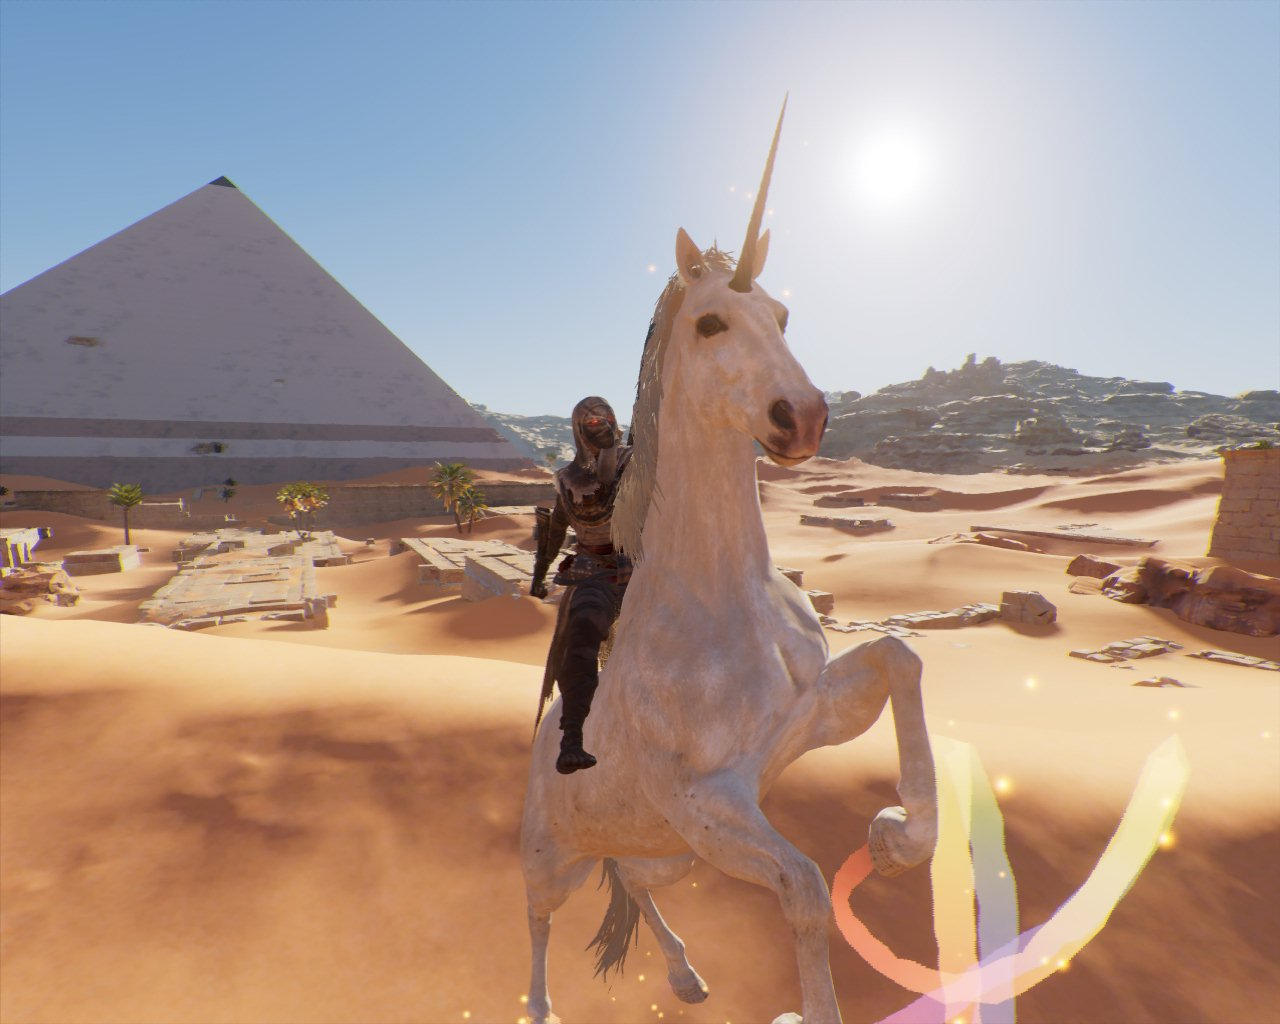 20171126210612.jpg - Assassin's Creed: Origins